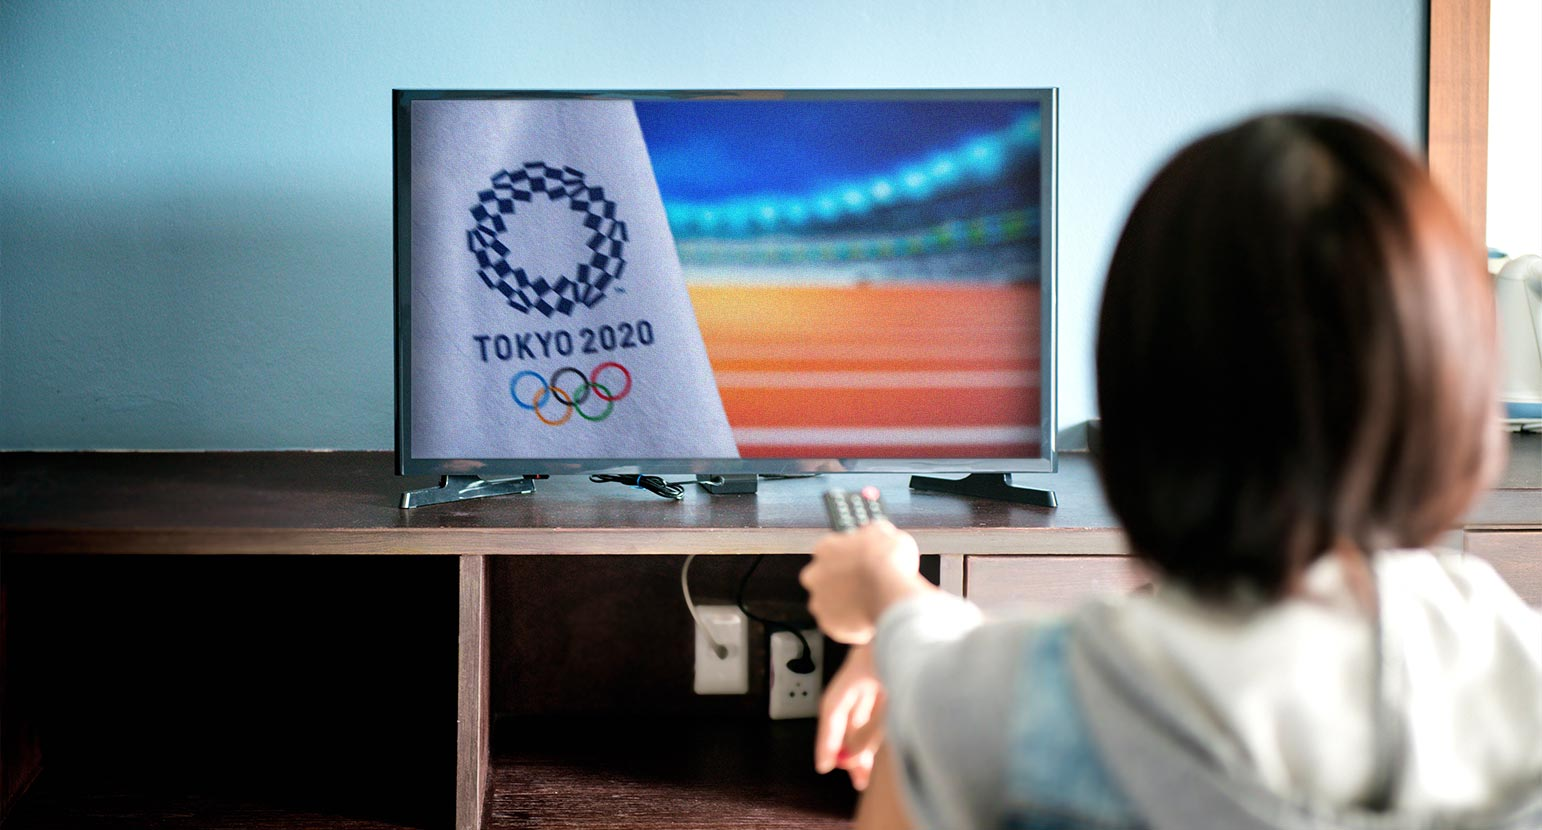 Woman watches Tokyo 2020 Olympics on TV